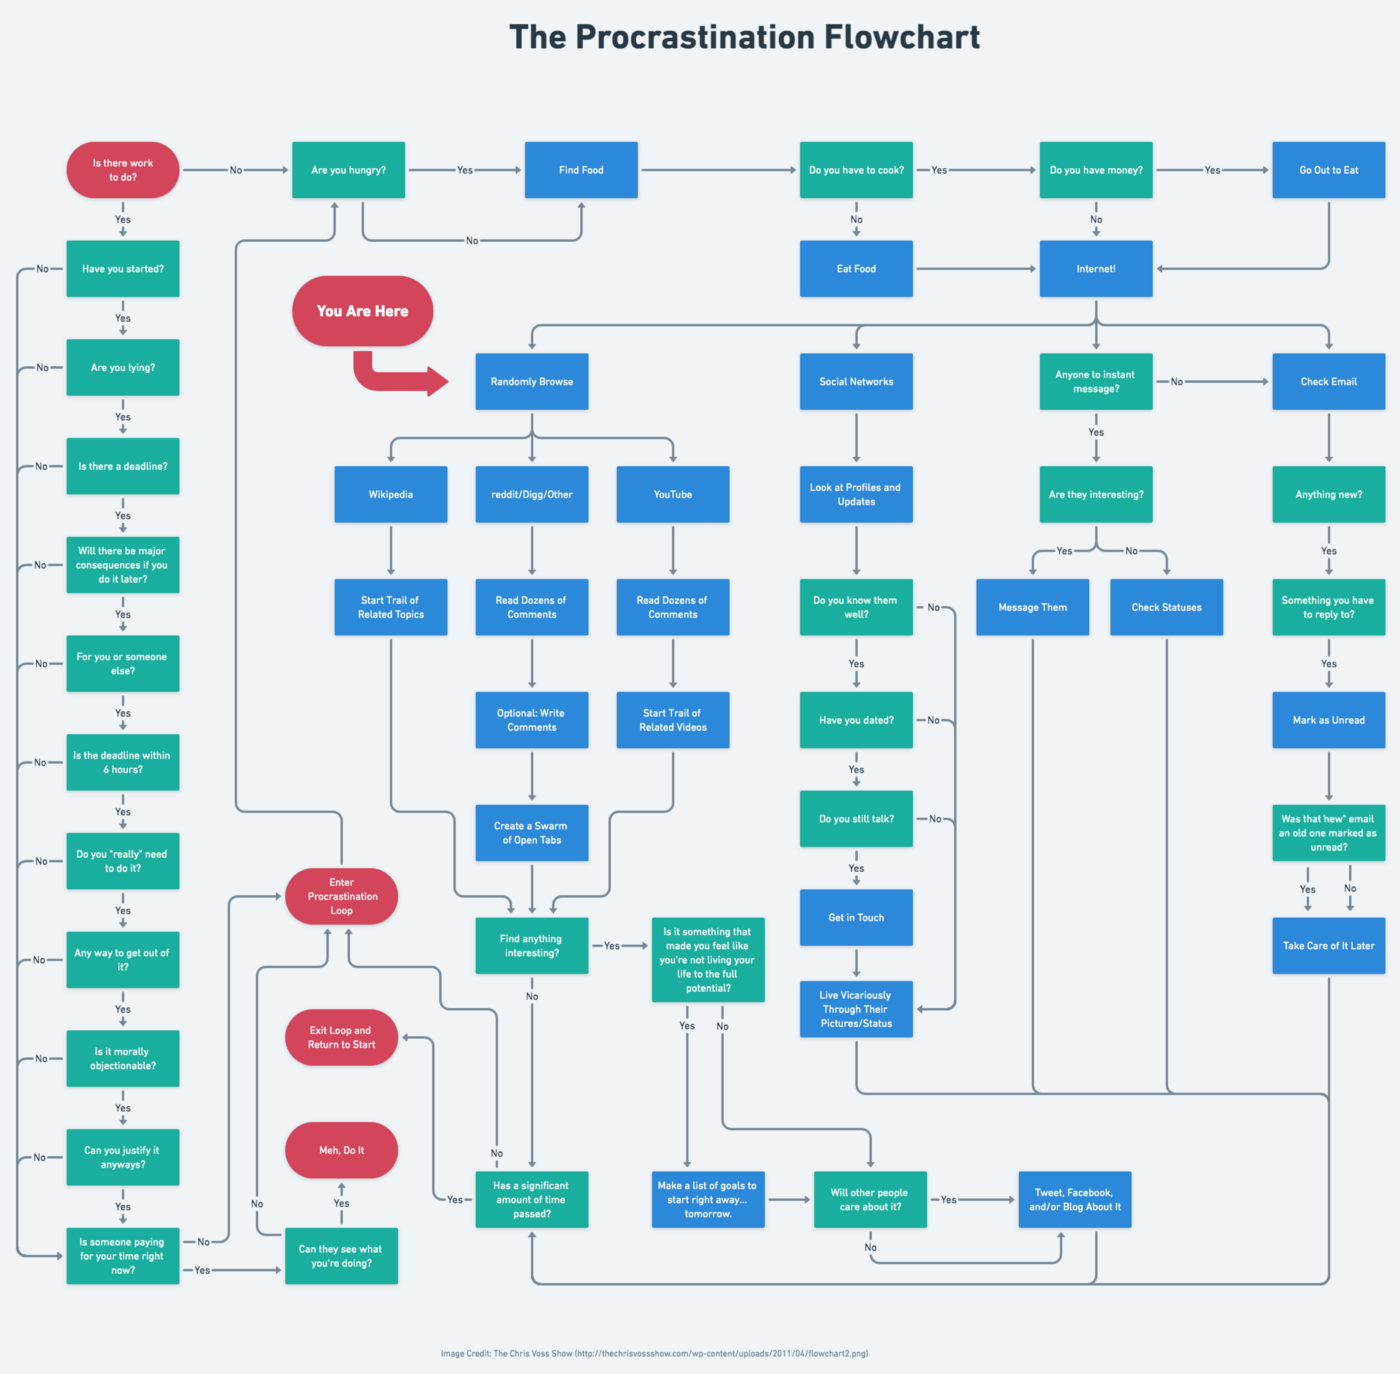 The Procrastination Flowchart, by The Chris Voss Show, a complicated, humorous flow showing patterns of human distraction.